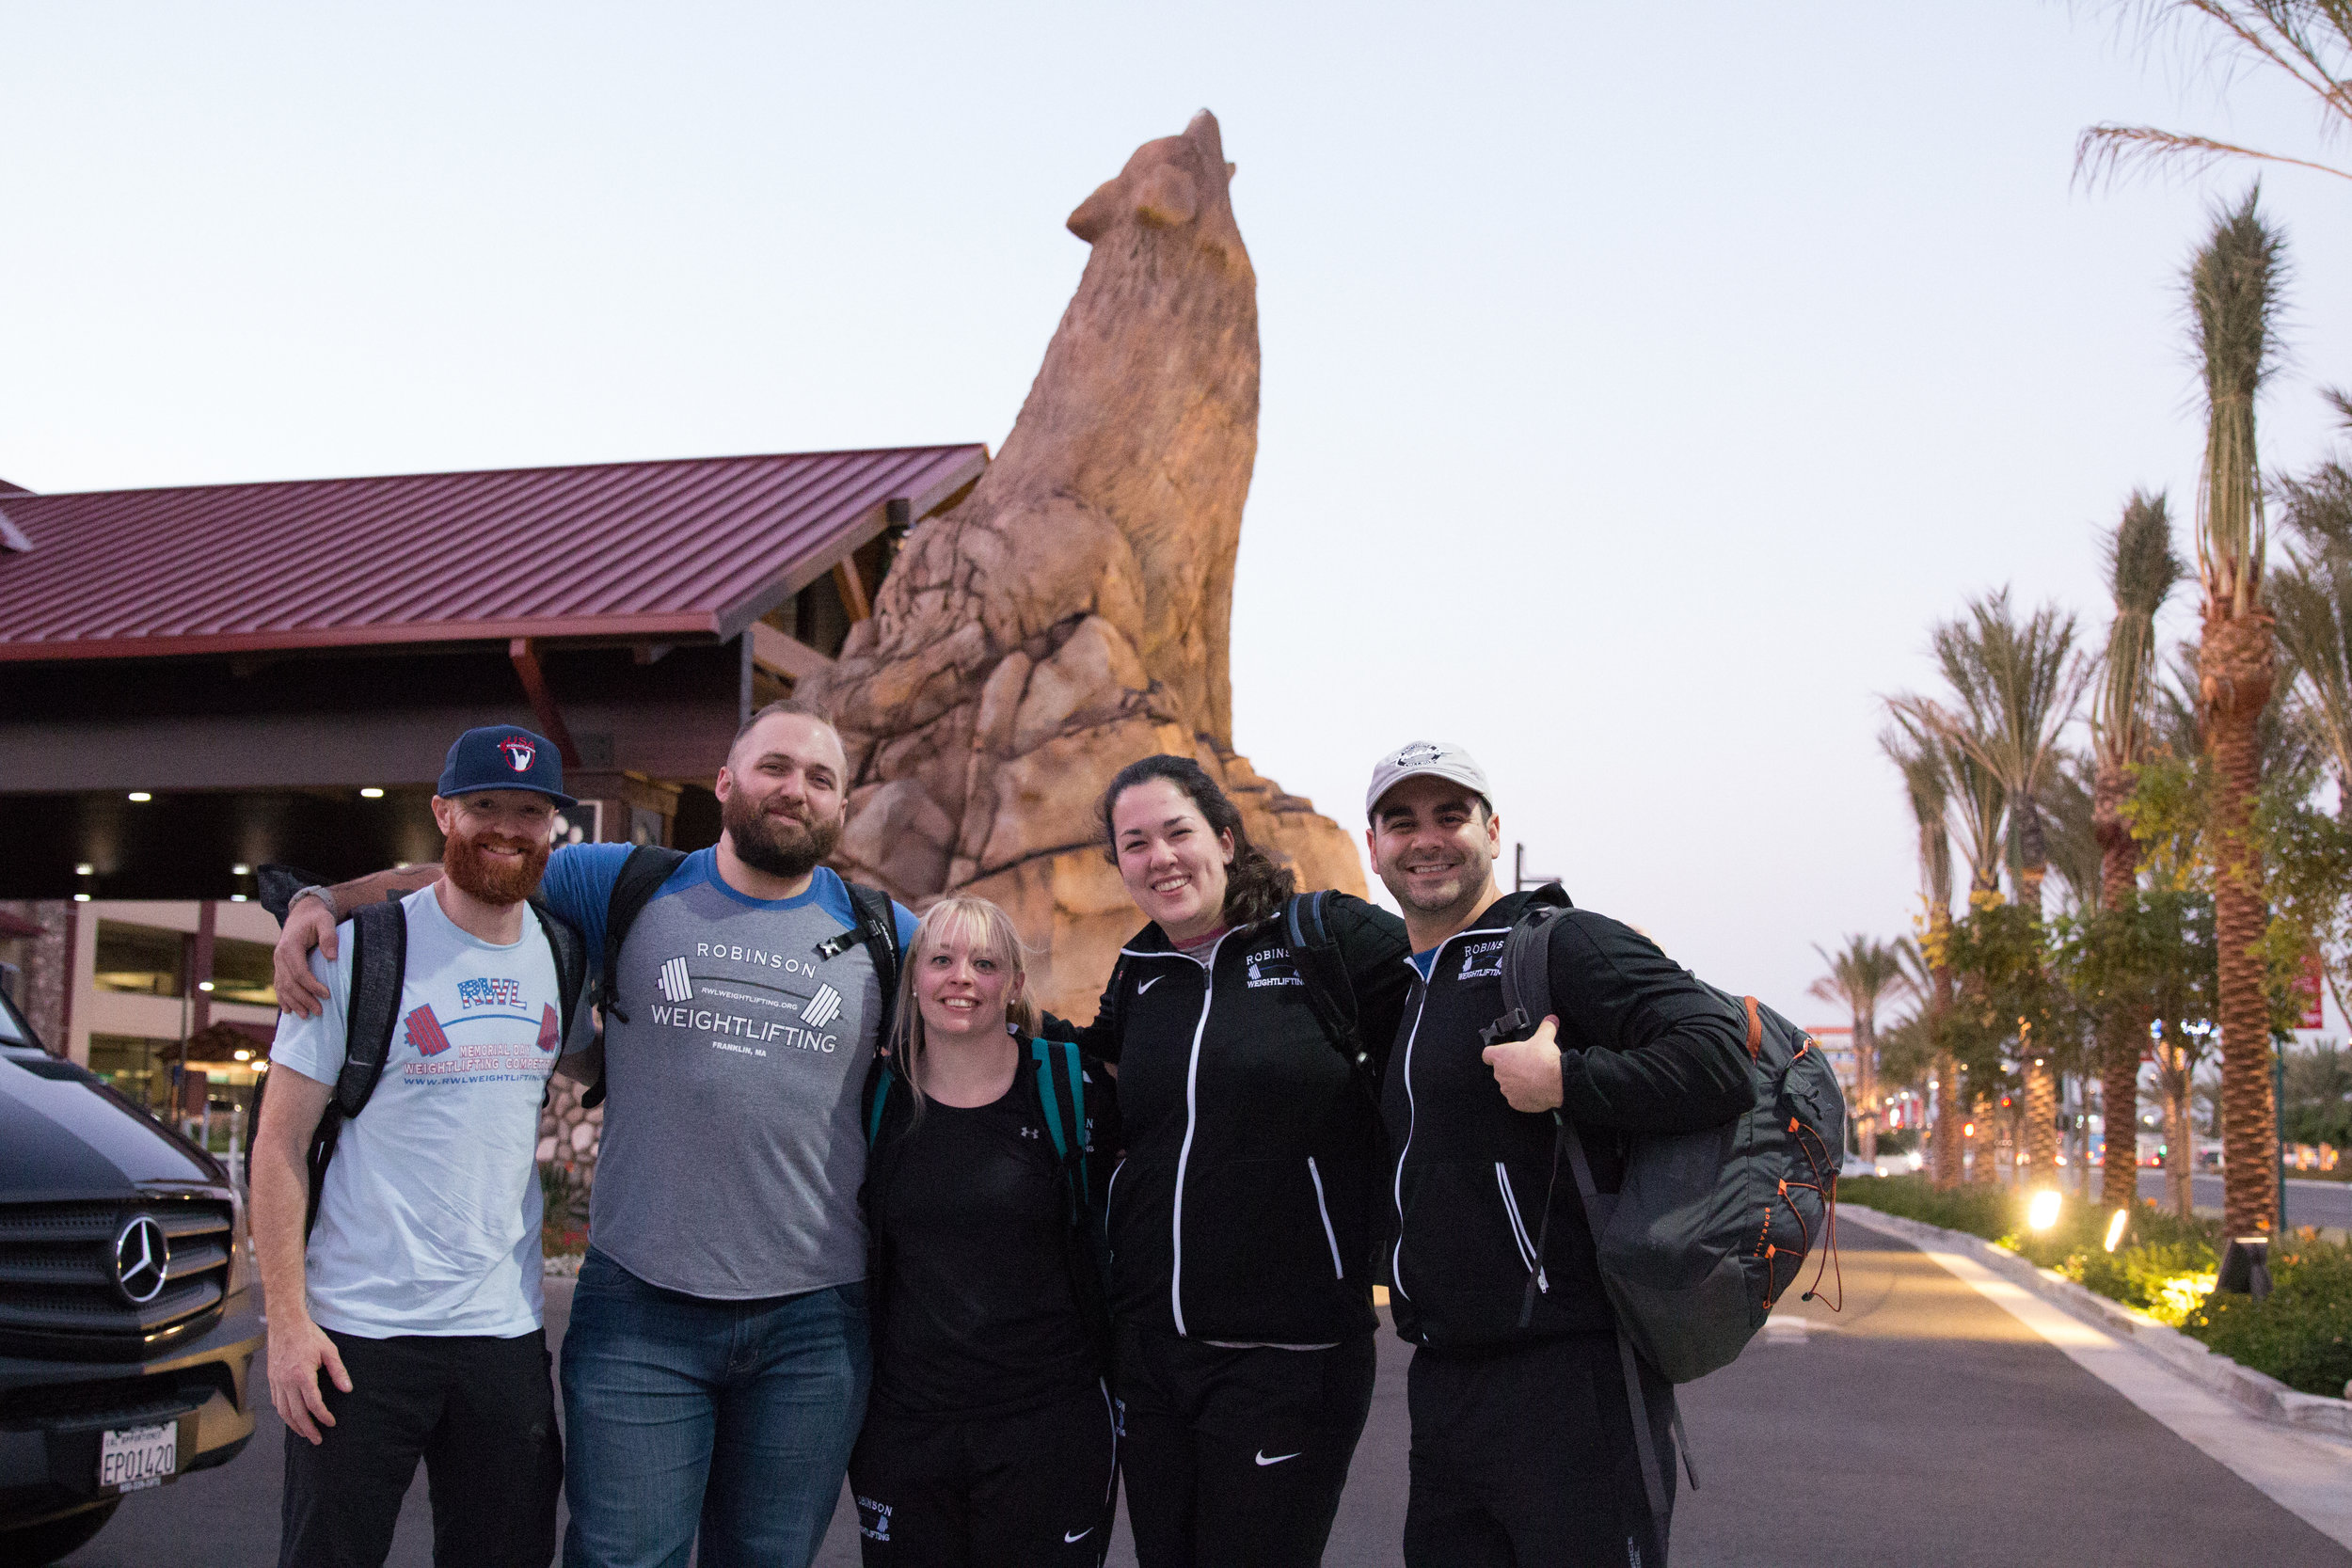 Meeting some of the loaders for The 2017 IWF World Weightlifting Championships.  We shared a shuttle from the airport and I found out Olivia (second in from the right)- followed Everyday Lifters.  I was like.. OH MY GOSH!! yessss... I love meeting you guys and learning about who you are. A very cool moment for me.  Thank you guys for making the trip to the hotel less sucky.